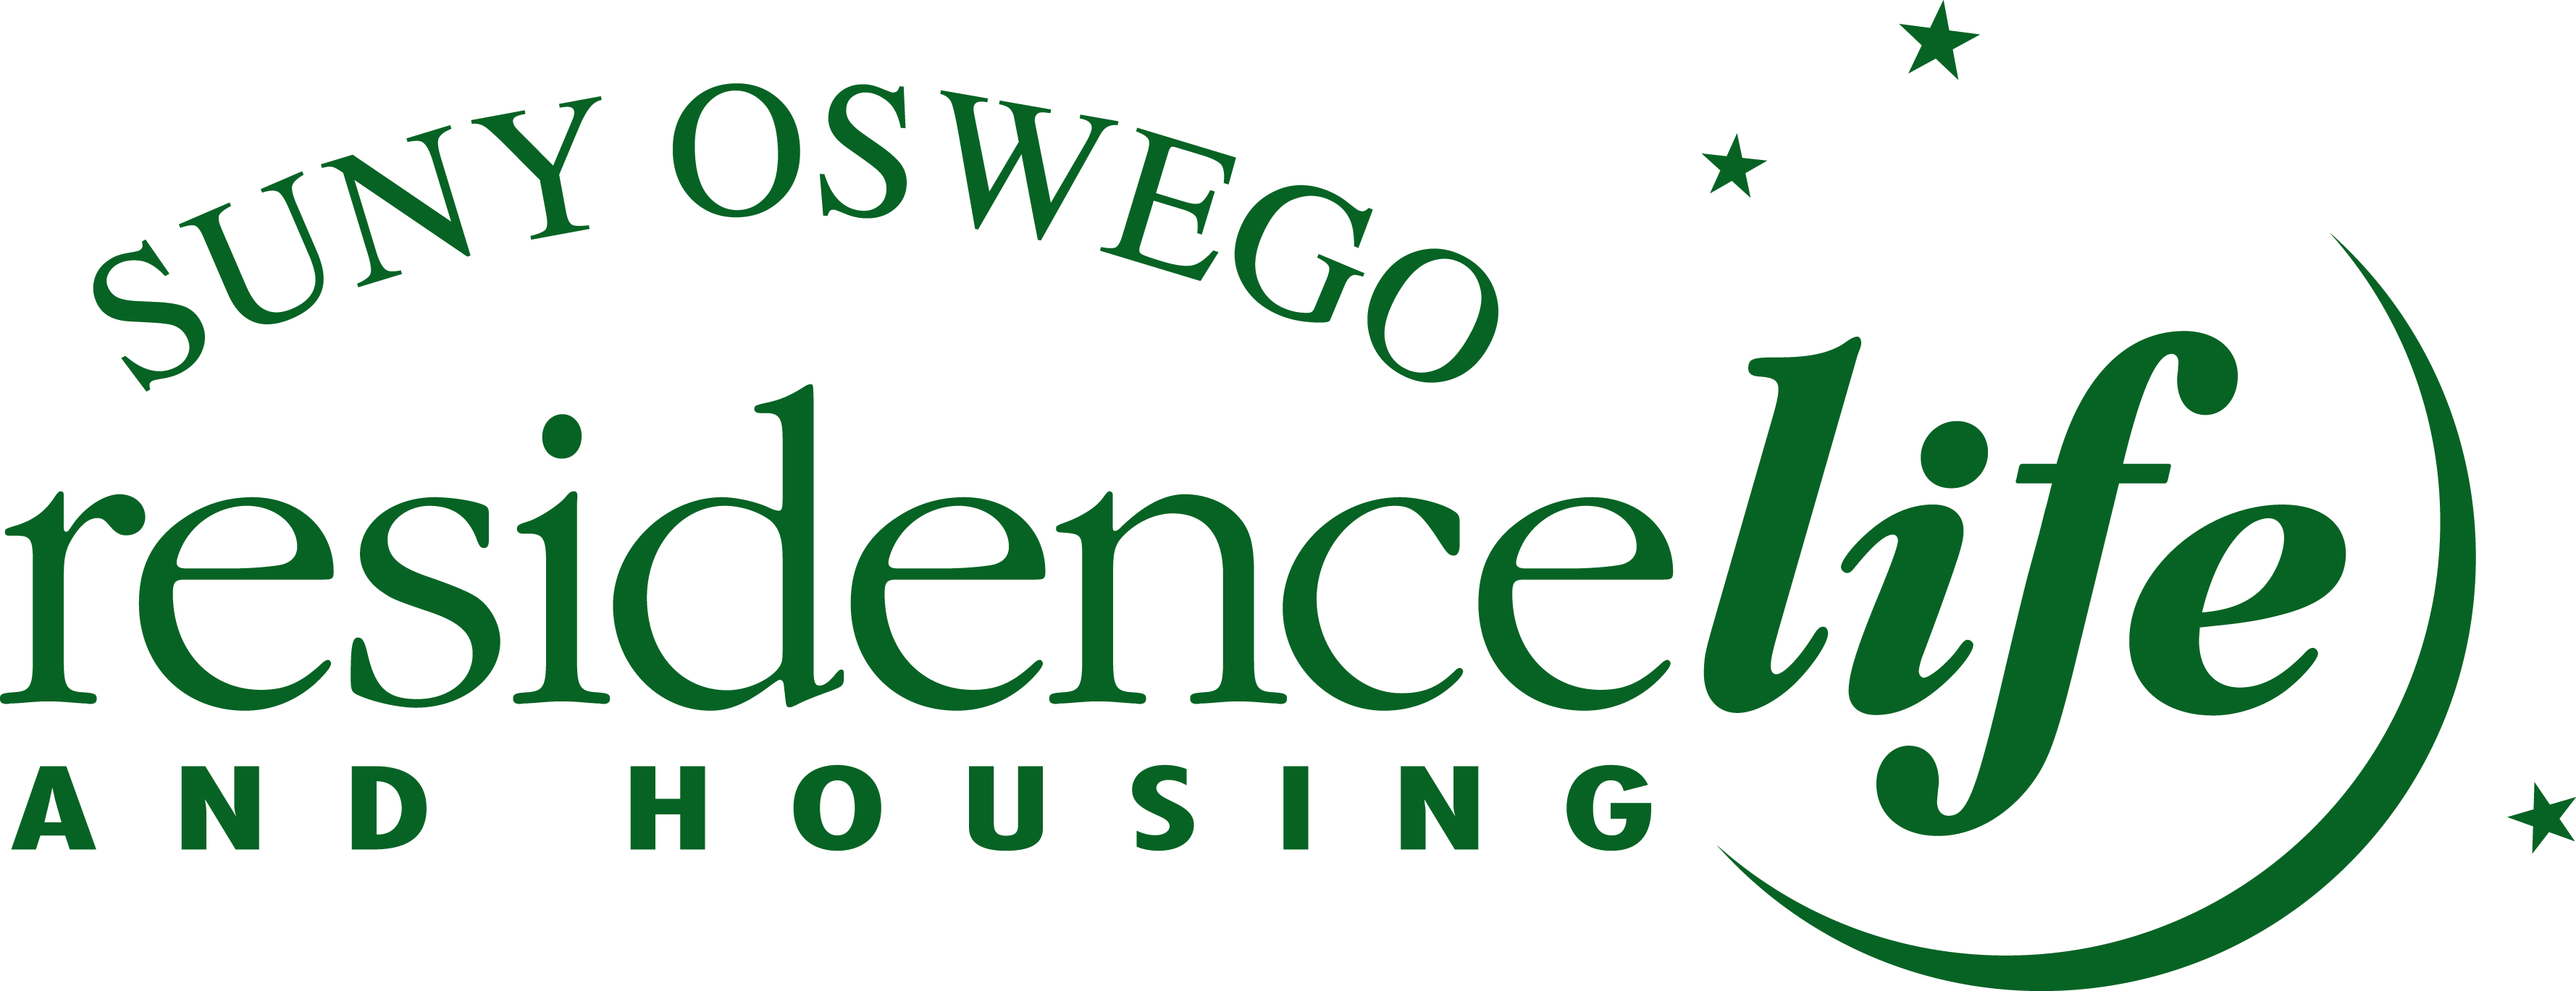 SUNY Oswego Residence Life and Housing logo link to home